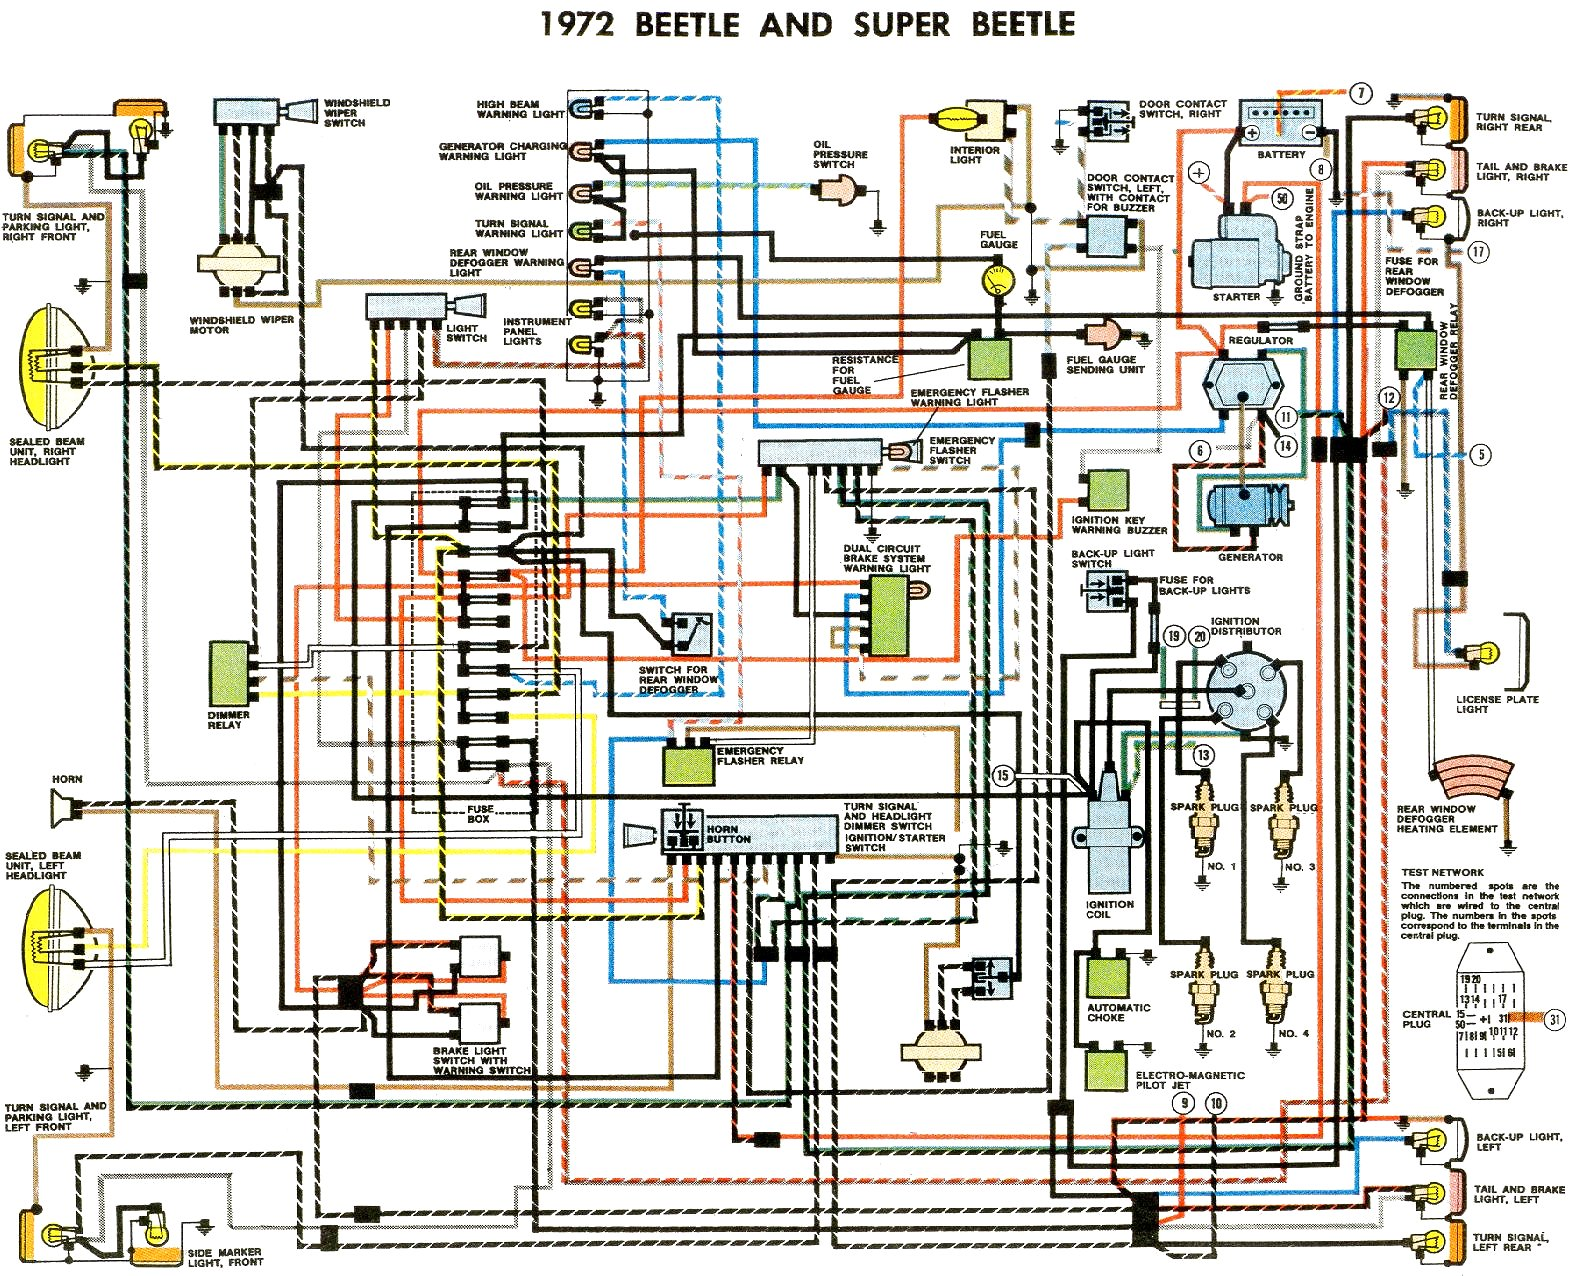 72 VW Beetle Wiring Diagram on 1973 super beetle wiring diagram